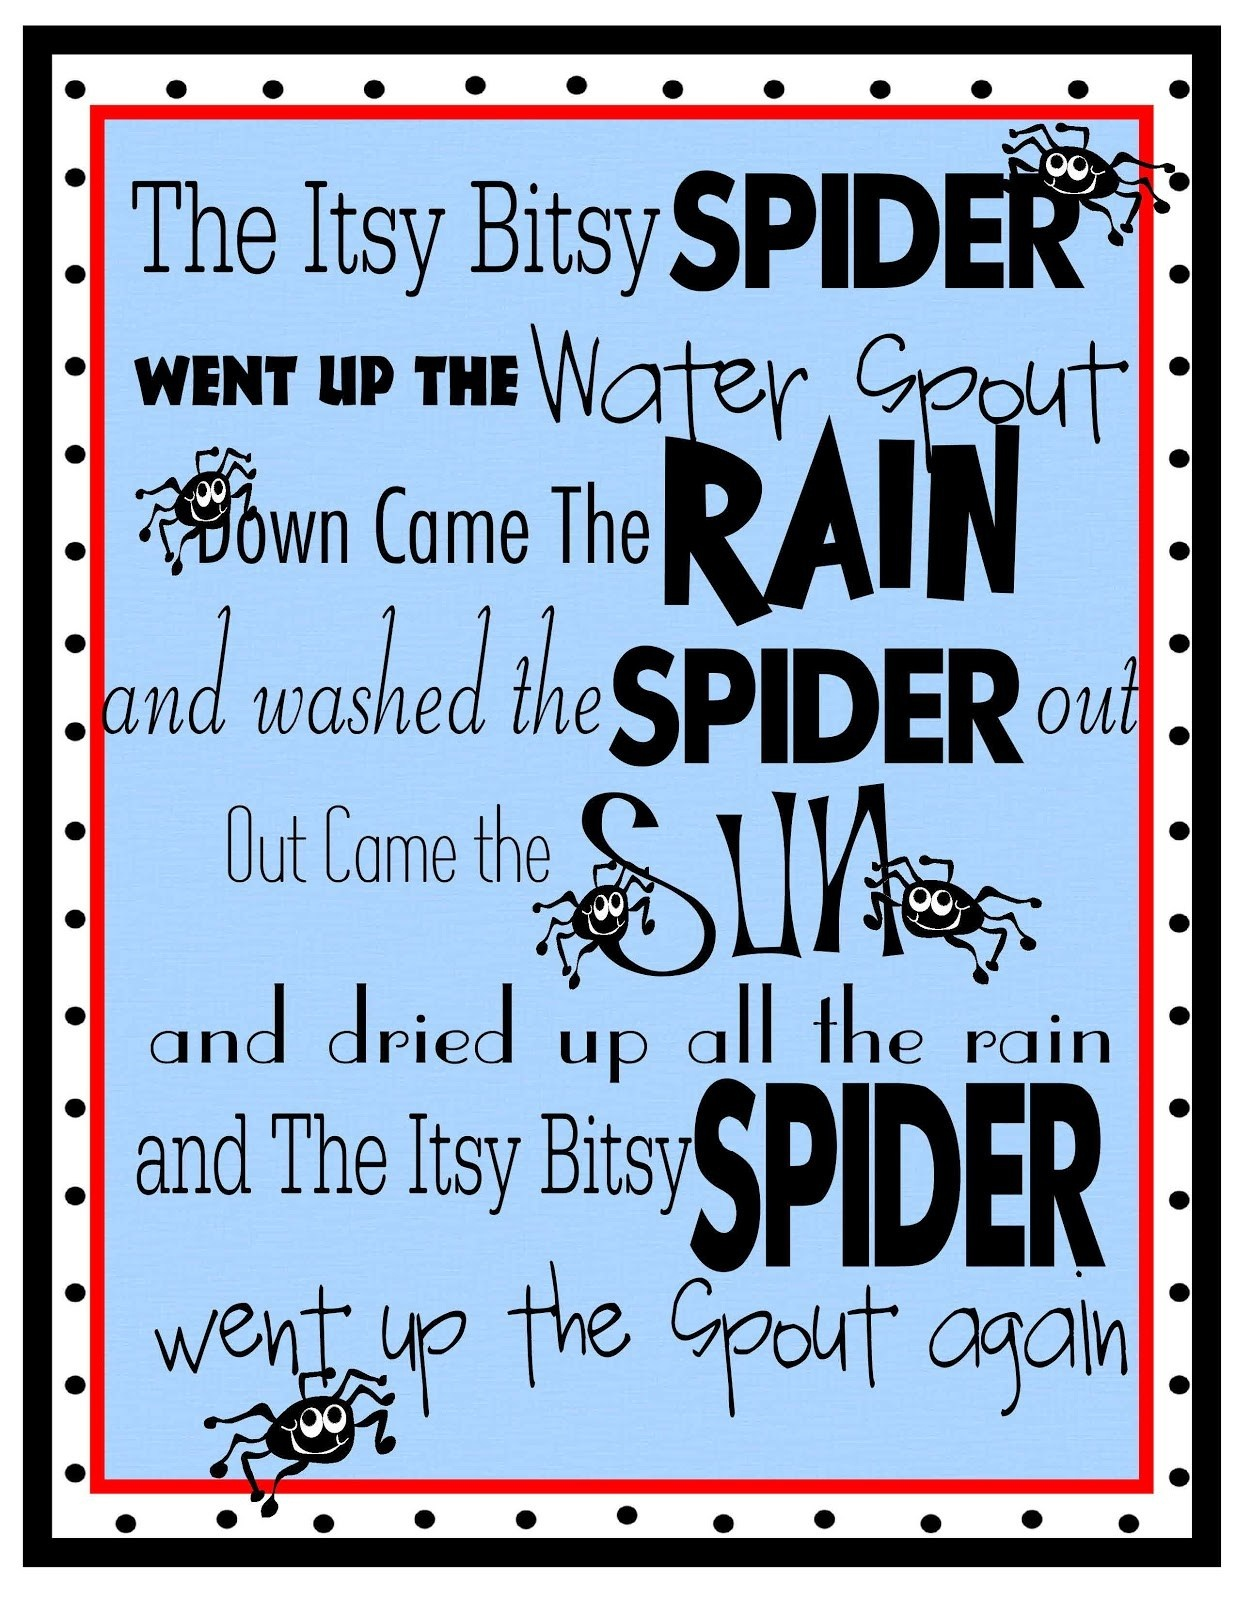 Printable Nursery Rhymes – Prntbl - Free Printable Nursery Rhymes